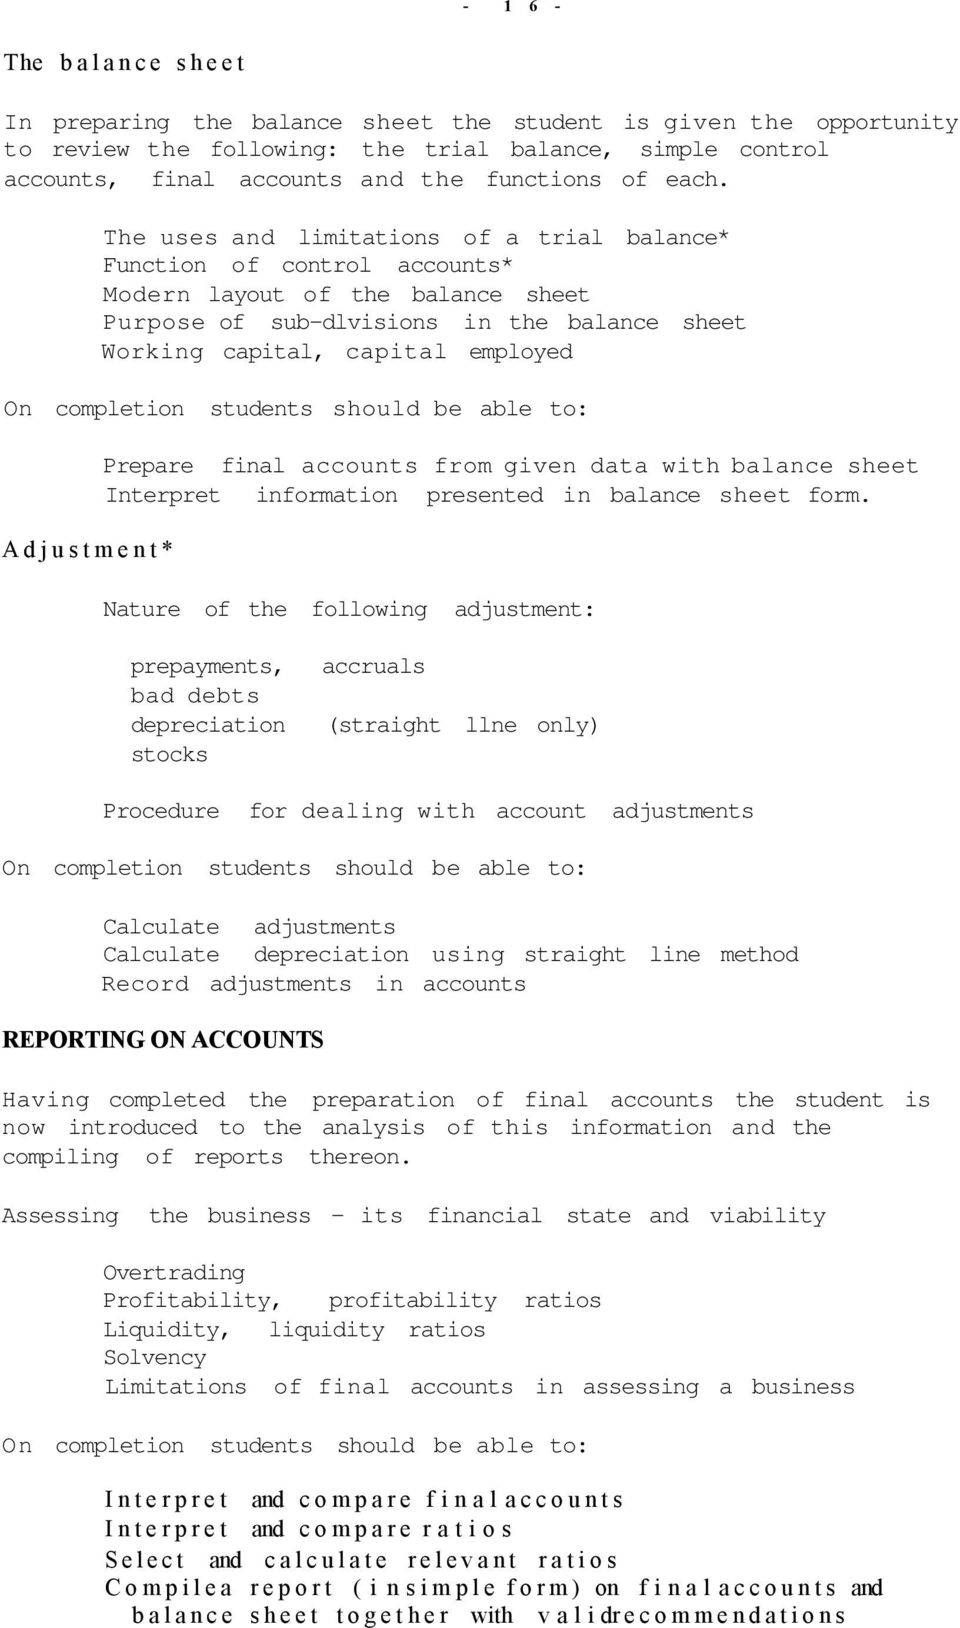 The uses and limitations of a trial balance* Function of control accounts* Modern layout of the balance sheet Purpose of sub-dlvisions in the balance sheet Working capital, capital employed A d j u s